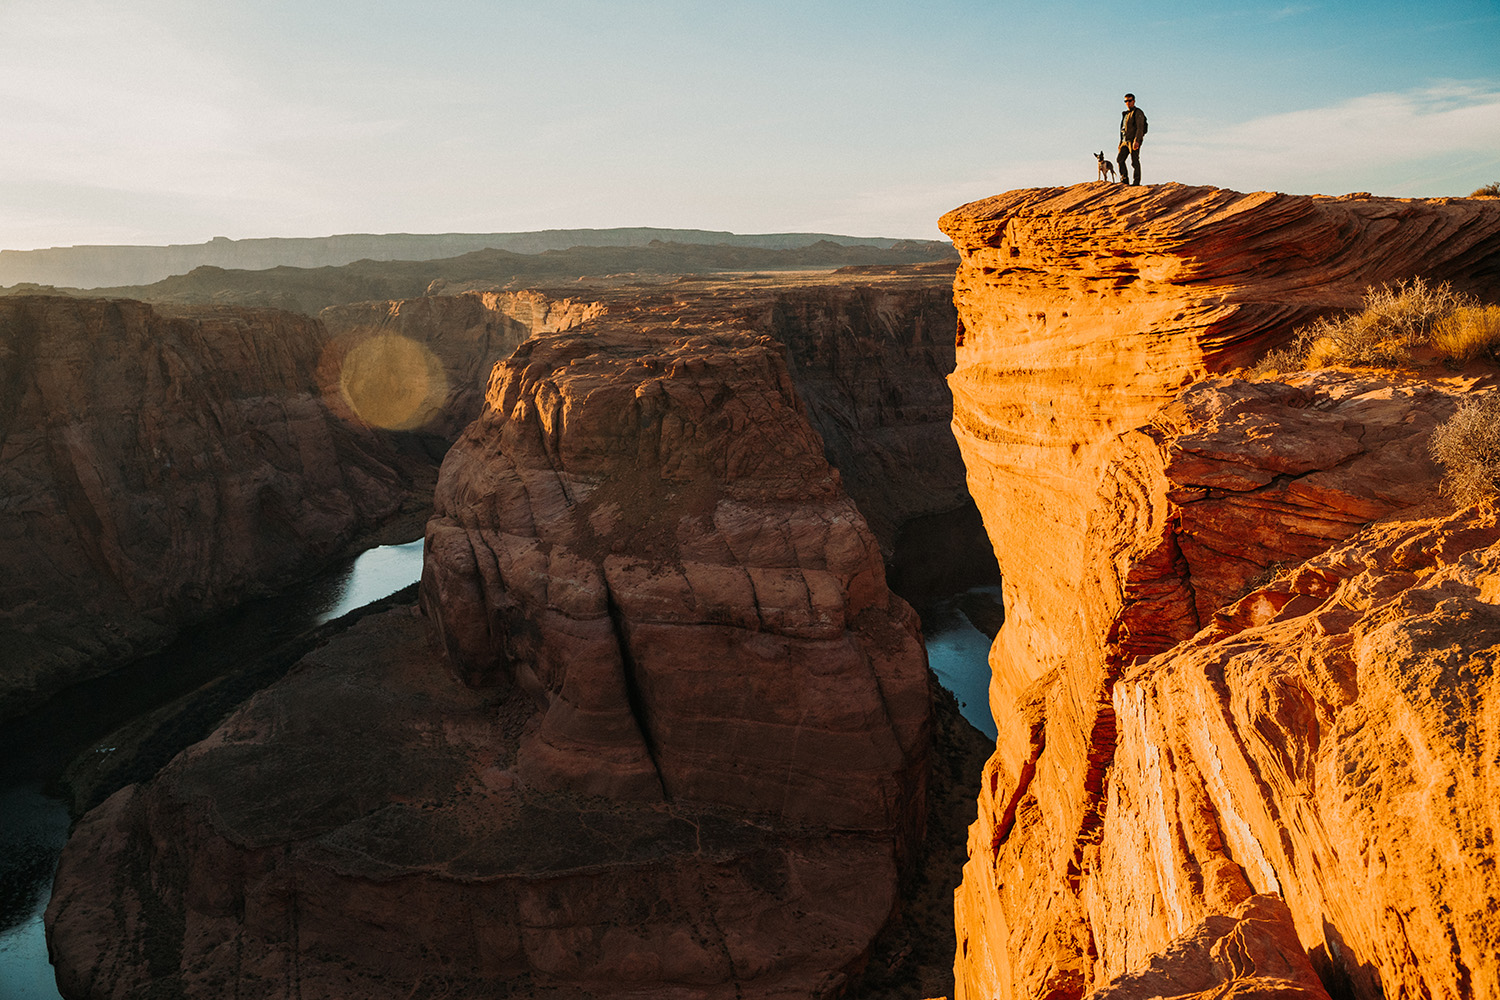 Horseshoe Bend Arizona Josh Hartman Kovu Van Dog